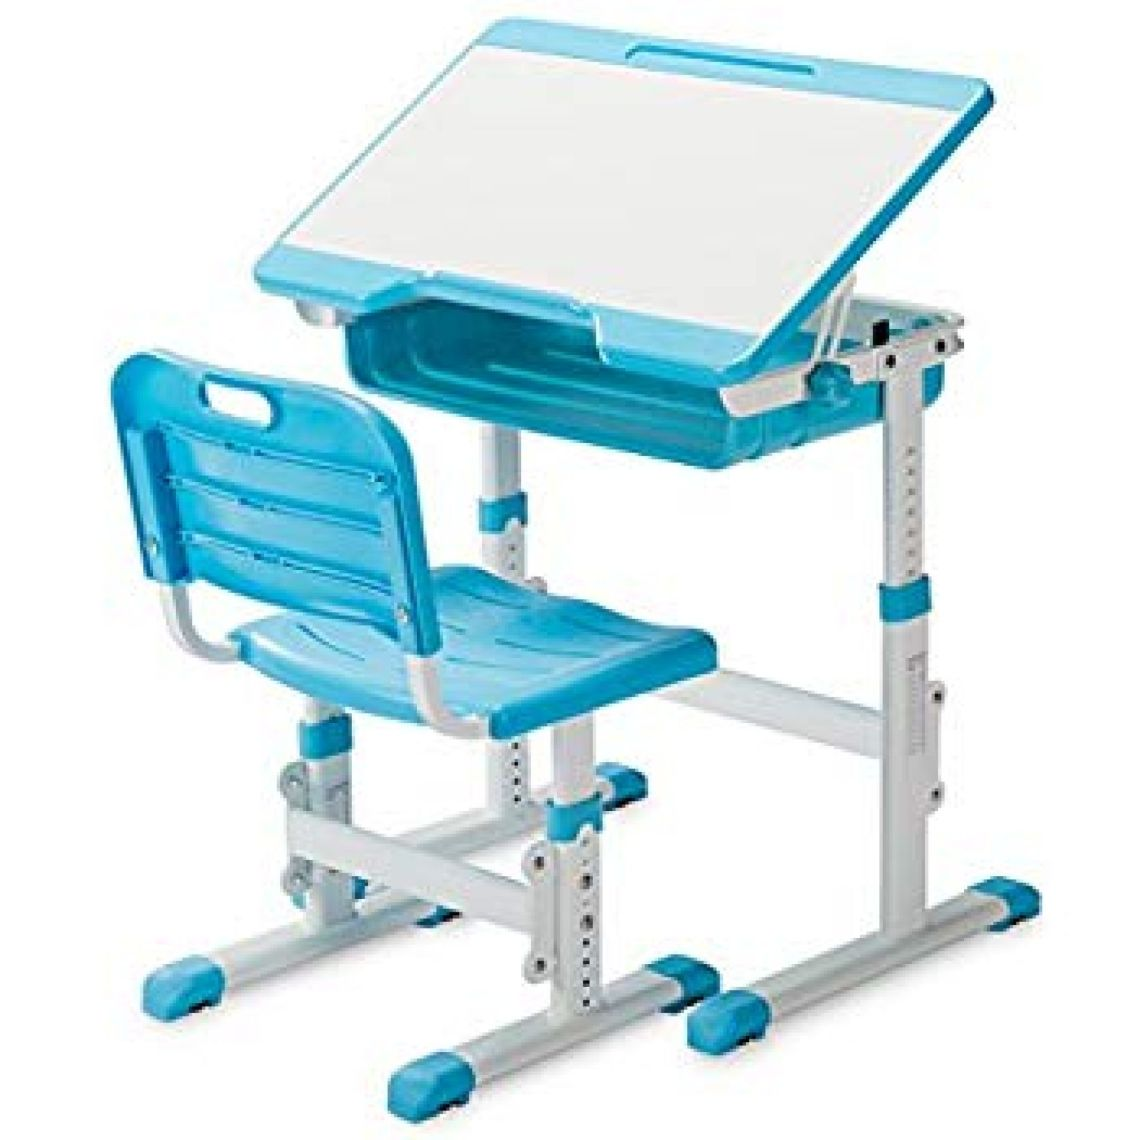 Amazon.com: SLYPNOS Ergonomic Adjustable Children's Desk and Comfortable Chair Set Specially Designed for Children Age 3-14, Blue: Kitchen & Dining